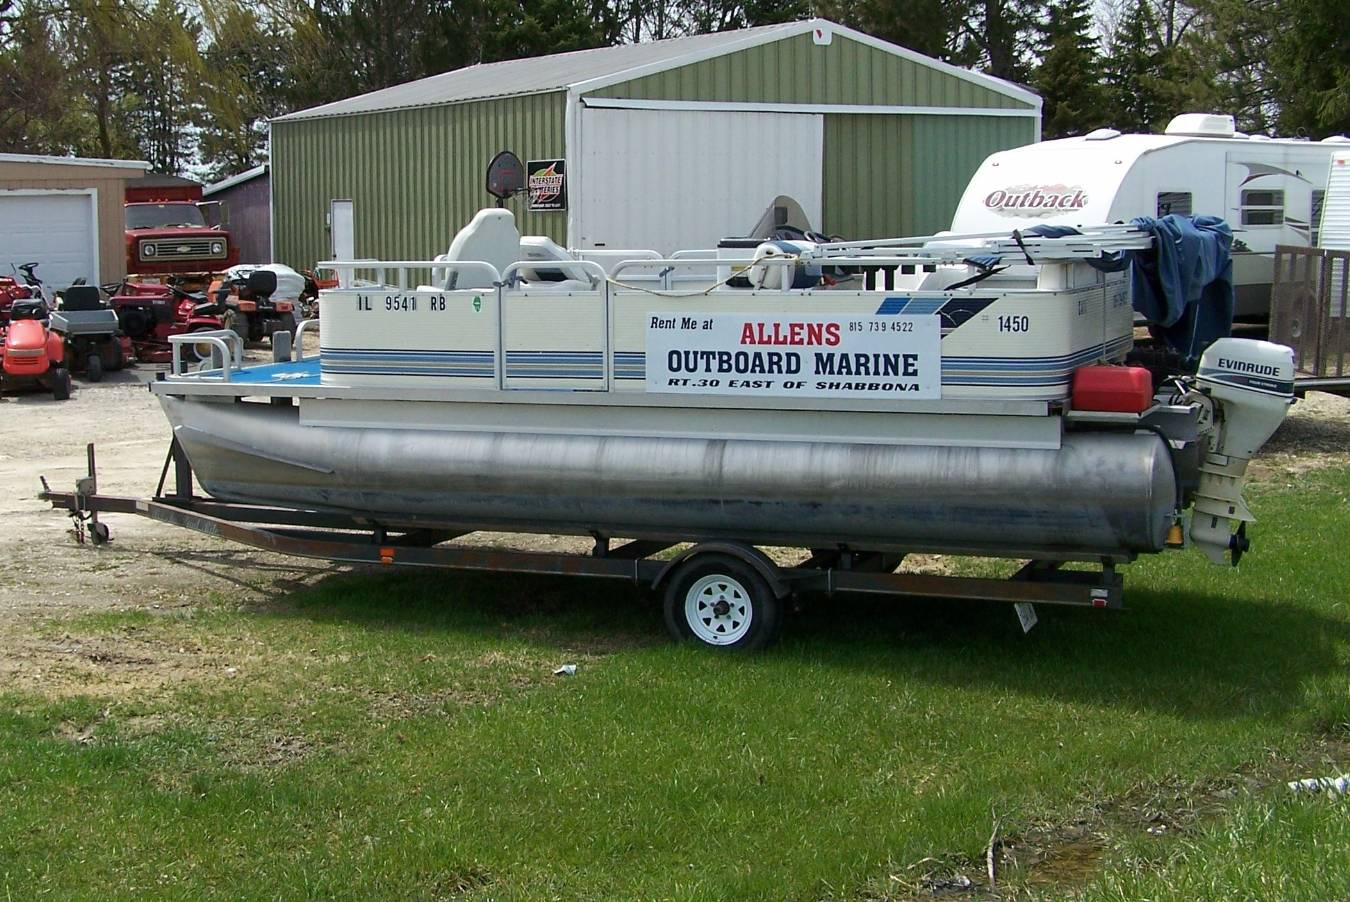 ALLEN Outboard Marine & Lawn Equipment   4778 Rte. 30 (P.O. Box 292) Shabbona, IL 60550   815-824-8377 FAX: 815-824-8378   E-mail: al554@aol.com